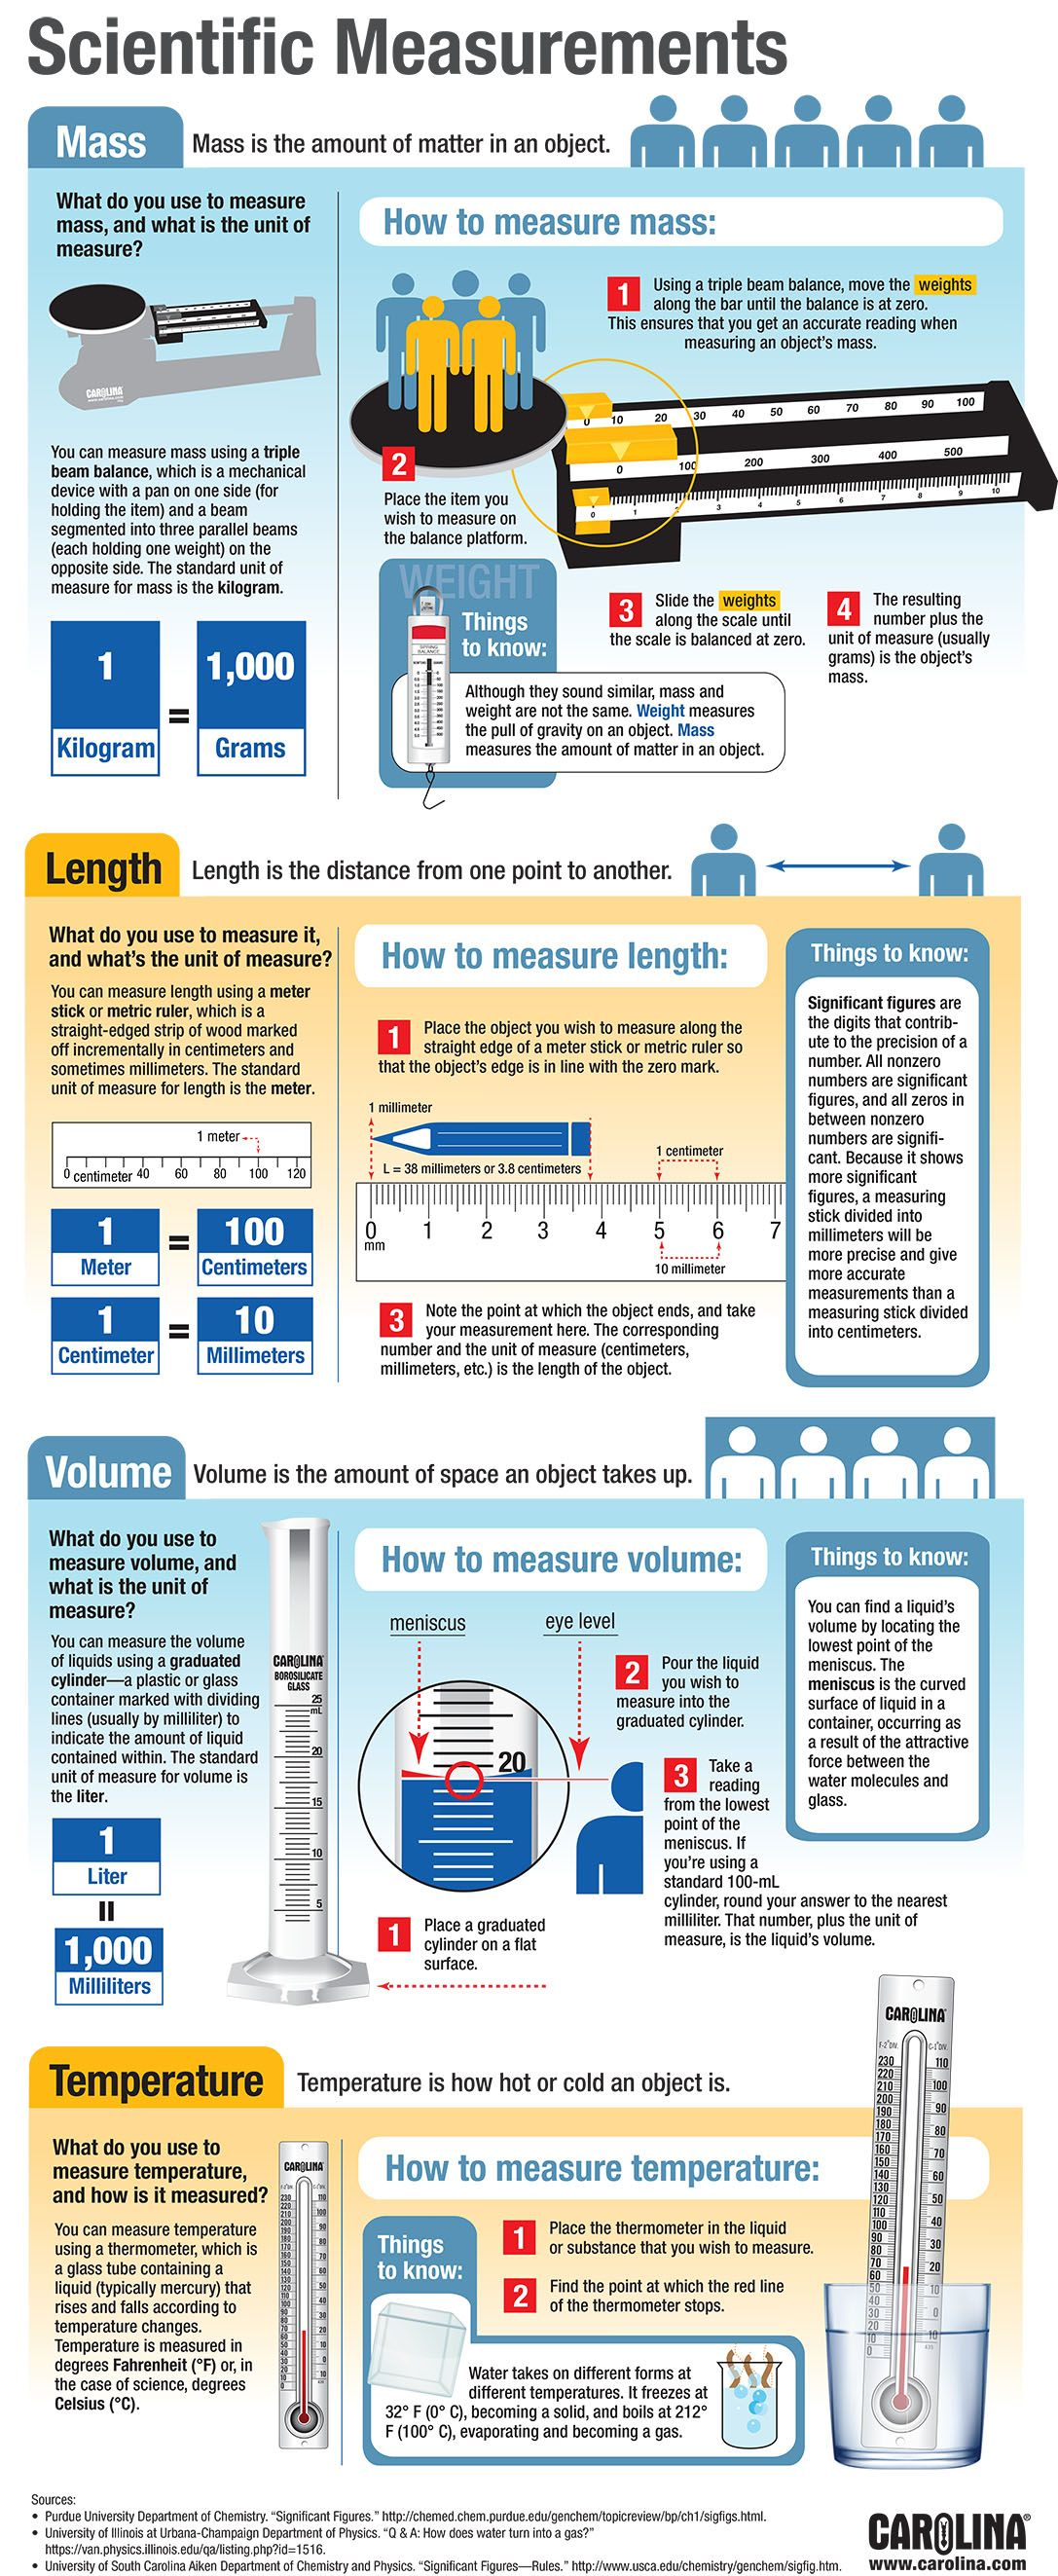 Infographic Scientific Measurements